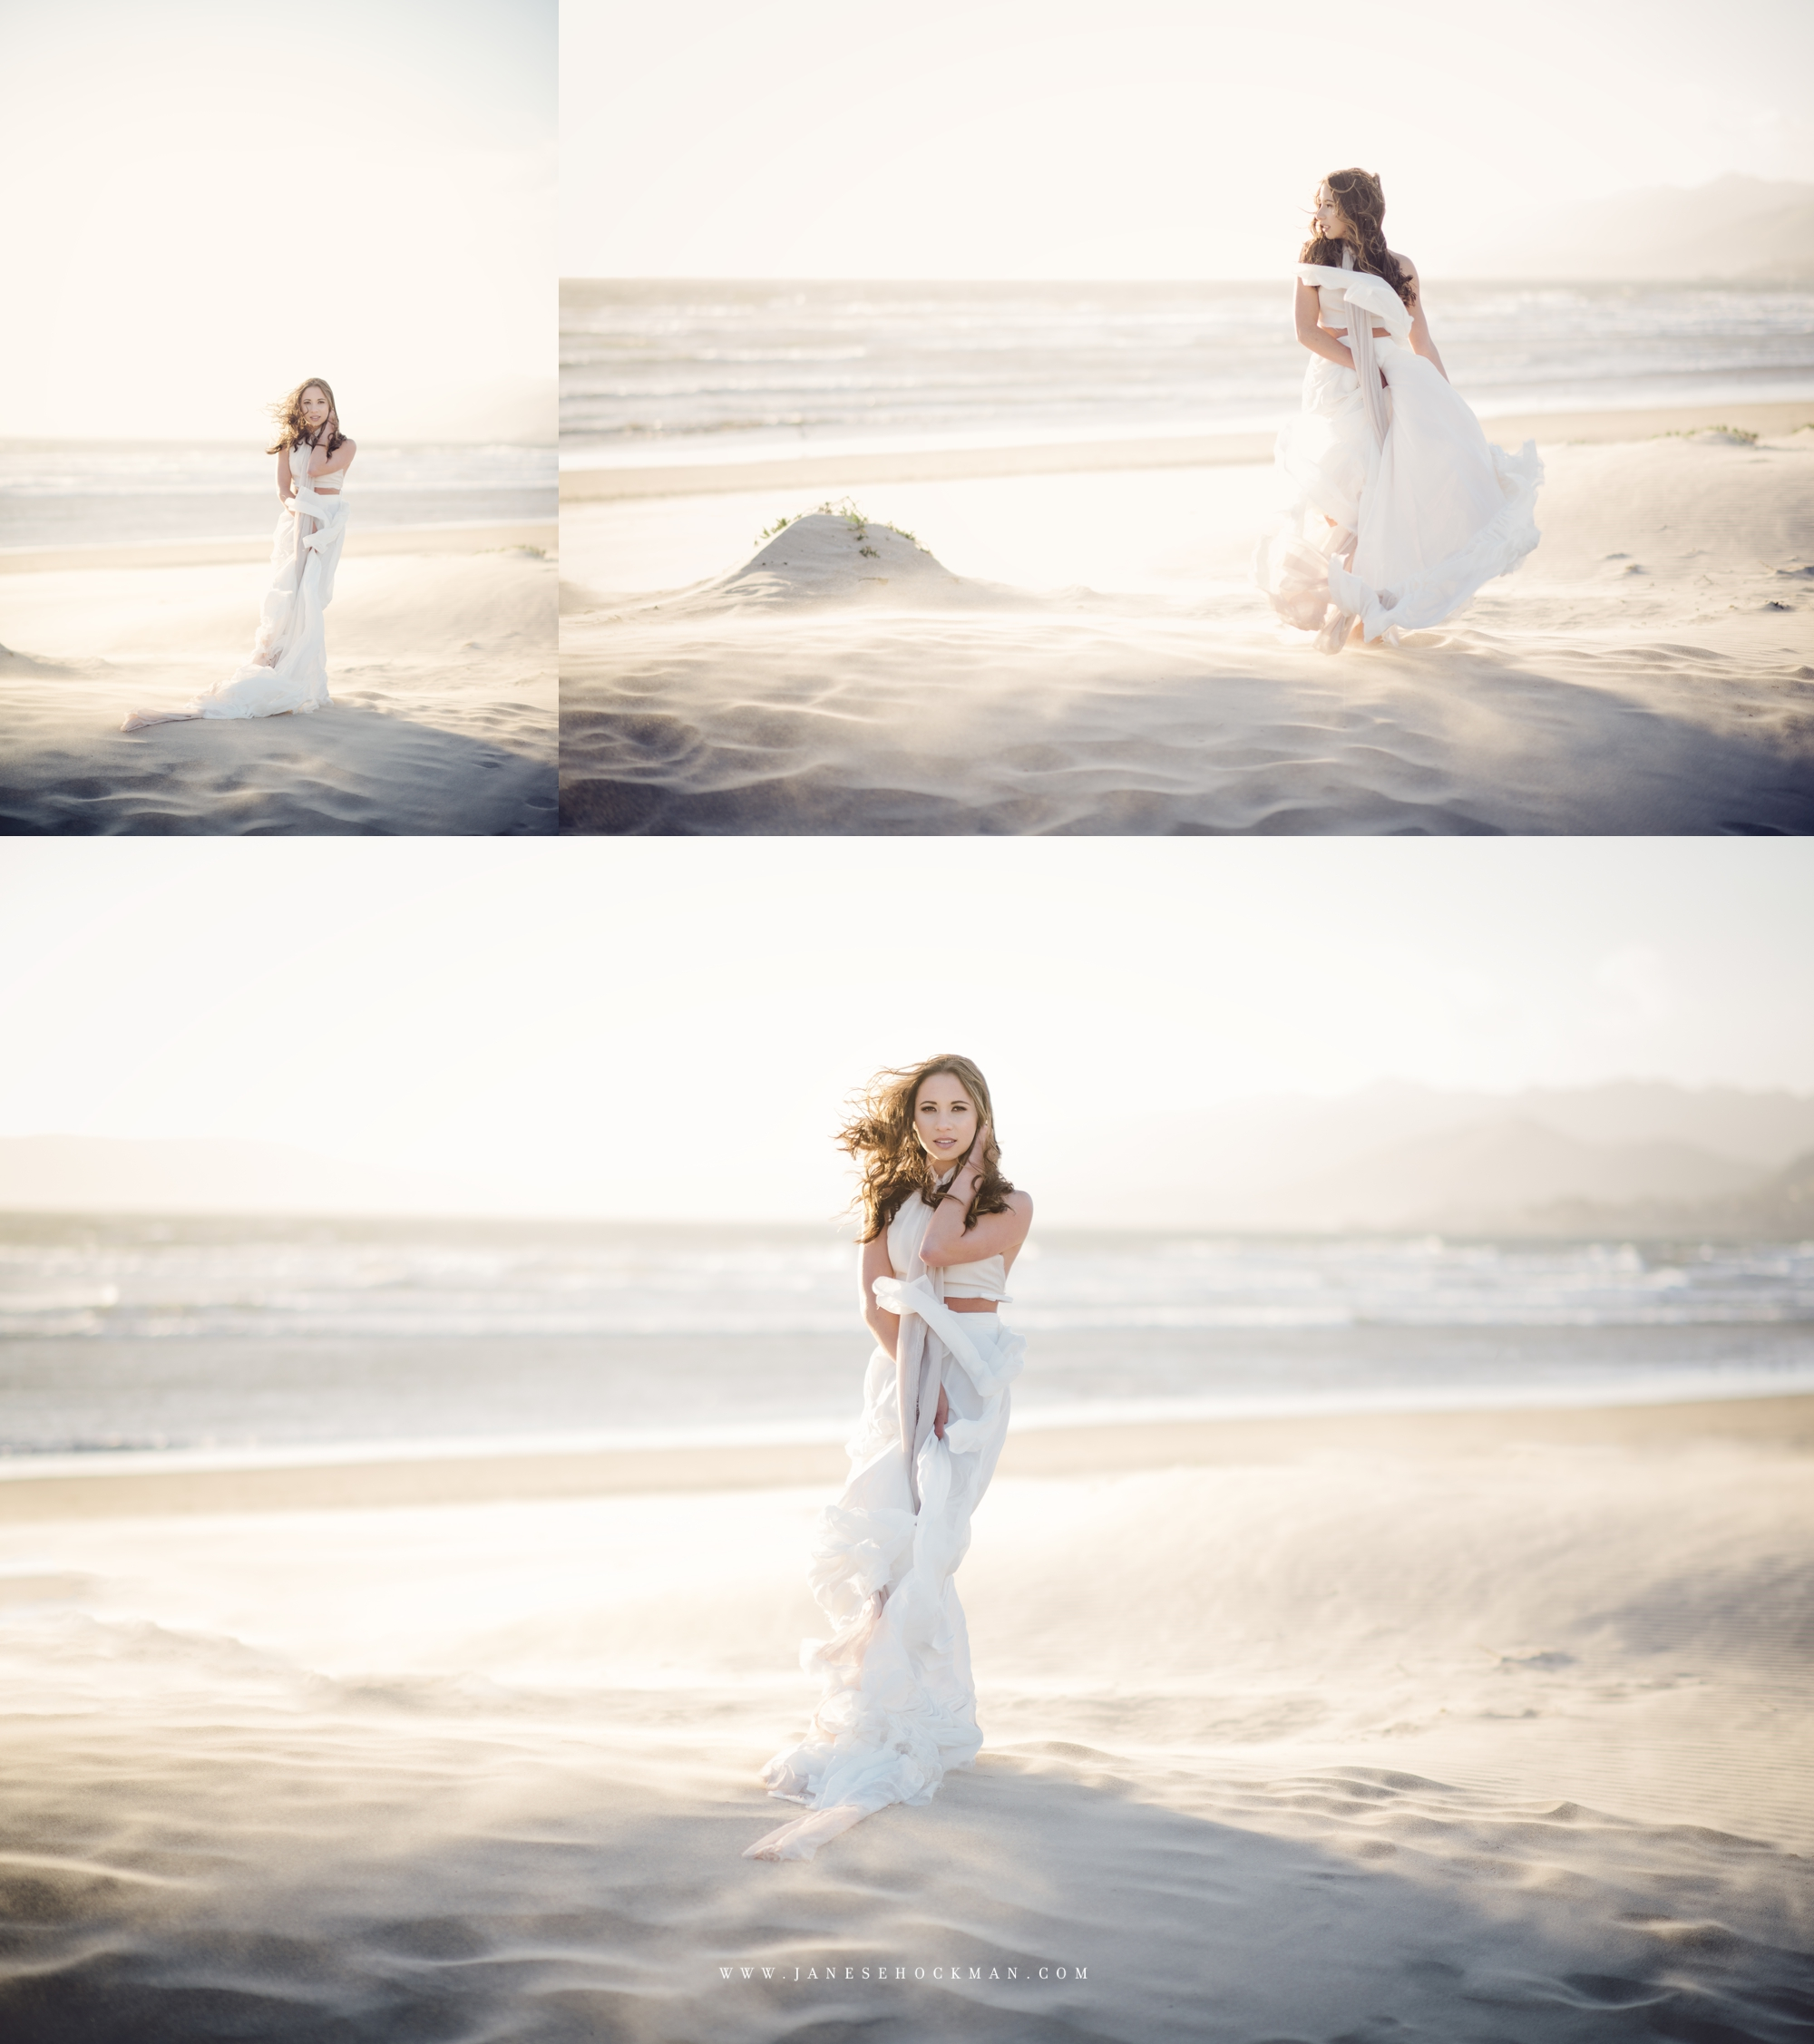 Grover Beach Sand Dunes-Janese Hockman Photography-High School Senior Portraits-Creative Shoot 4.jpg